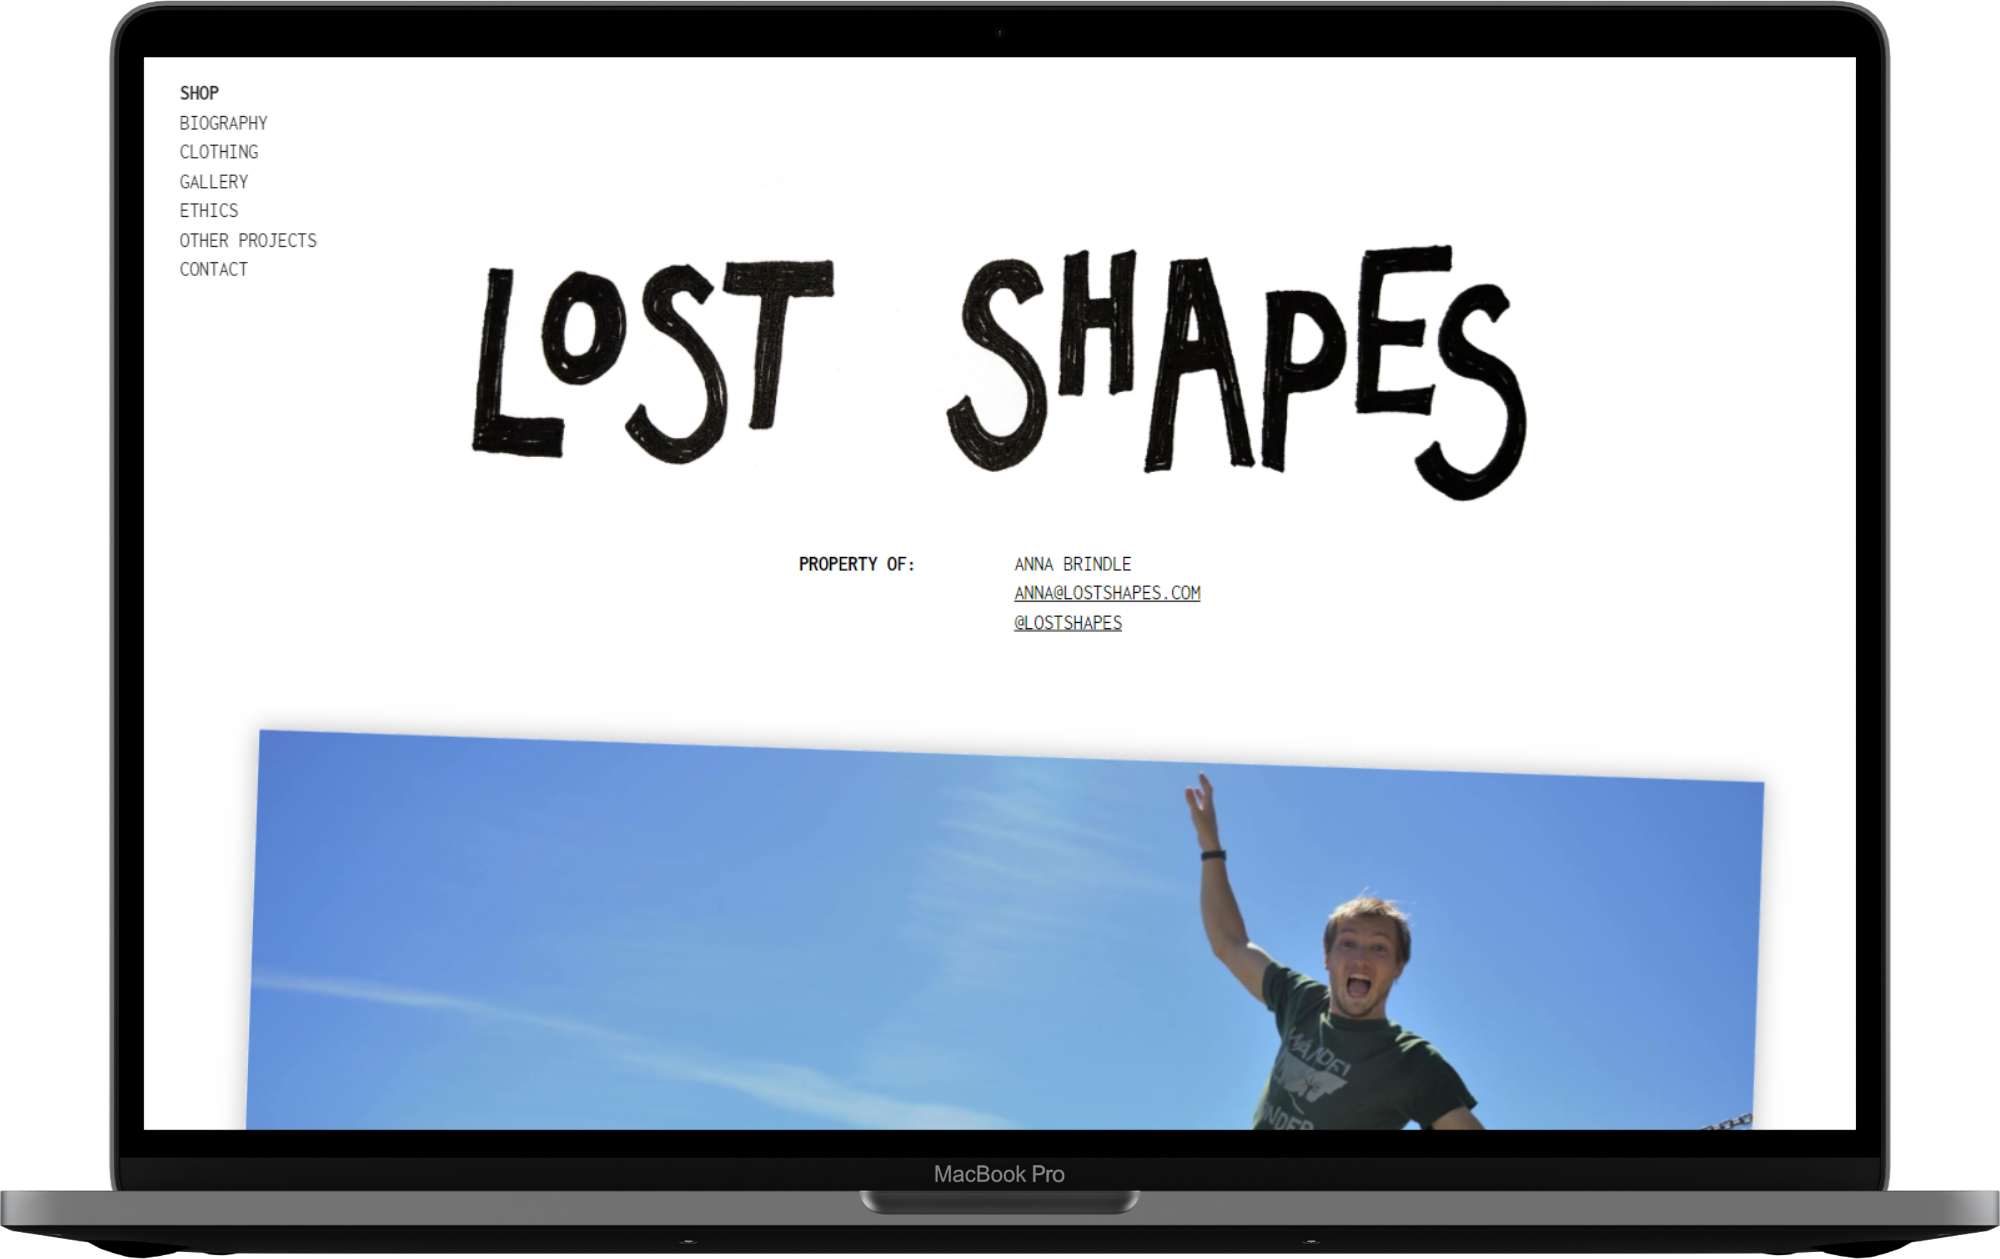 Lost Shapes